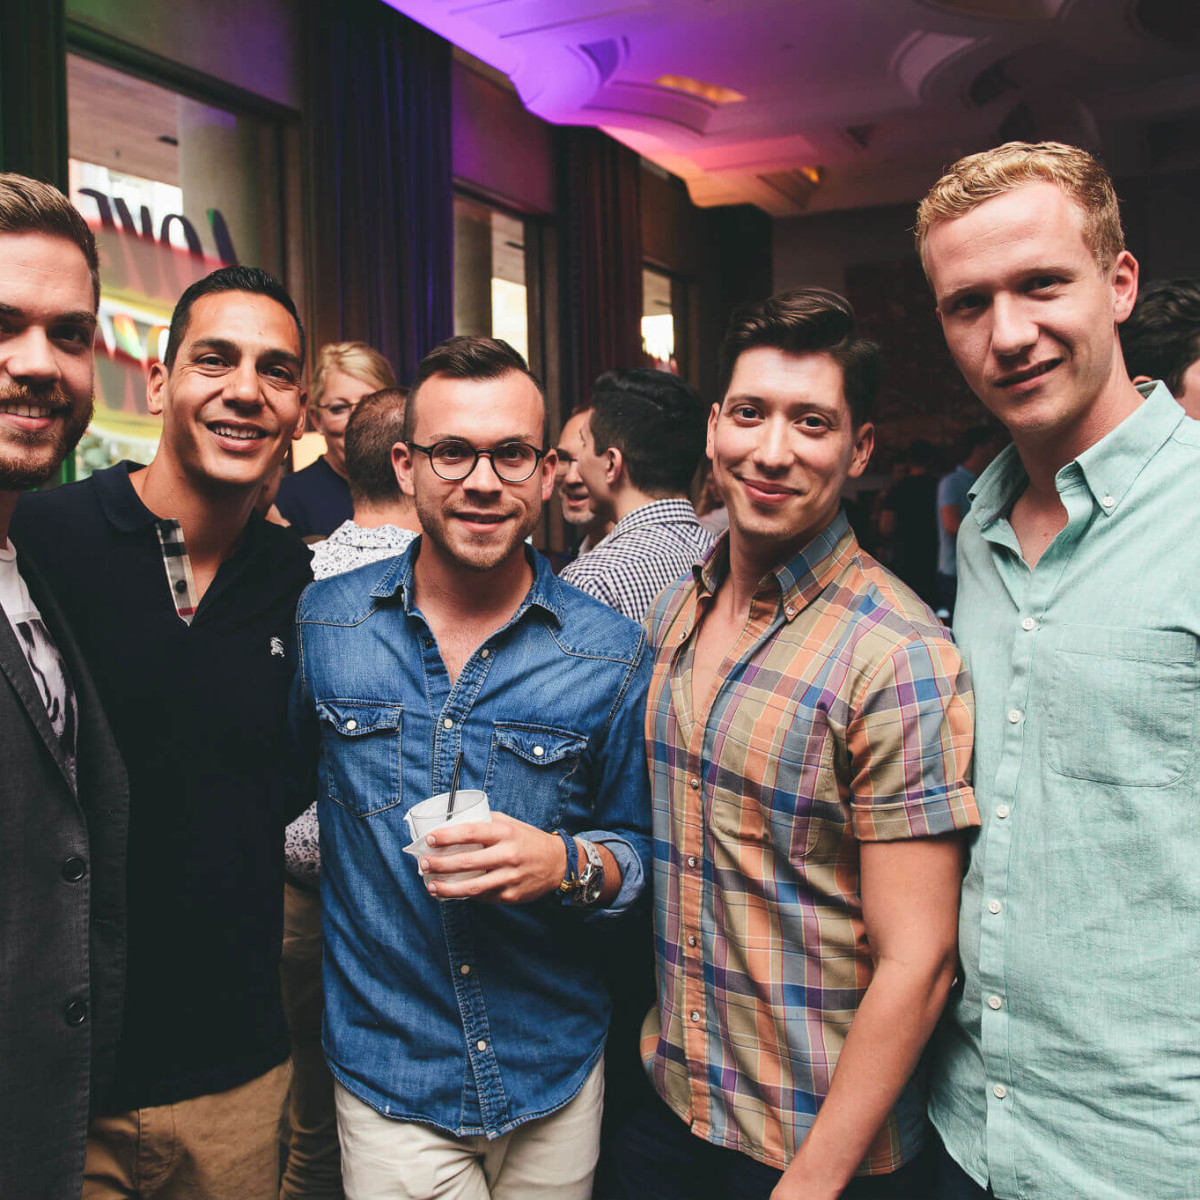 Turn it Up for Change Human Rights Campaign W Austin hotel Austin Pride 2016 James Hearne Eric Luna David Diaz Gilbert Hernandez Matthew Mercer